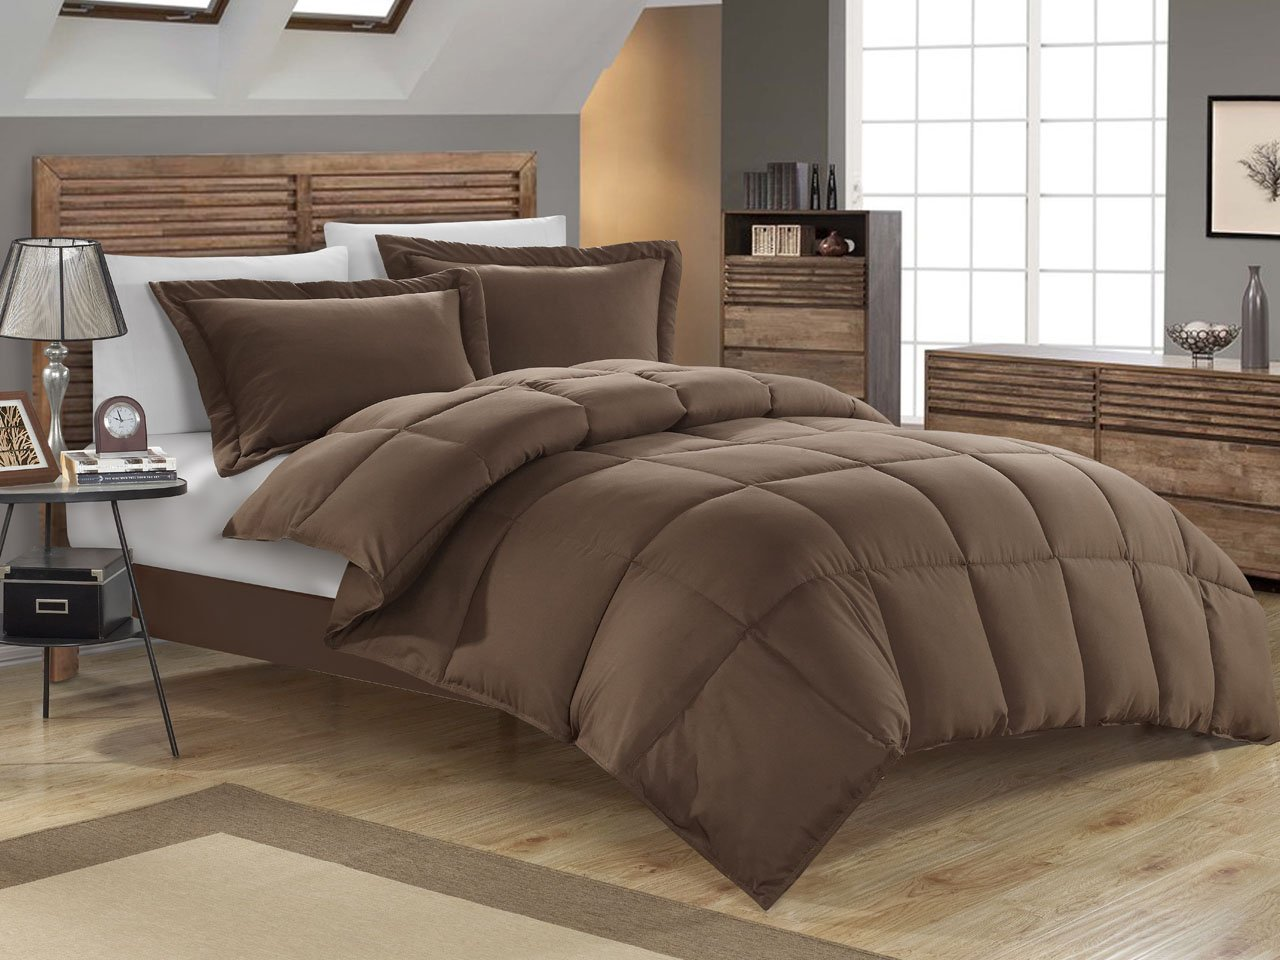 KingLinen® Chocolate Down Alternative Comforter Set Full/Queen